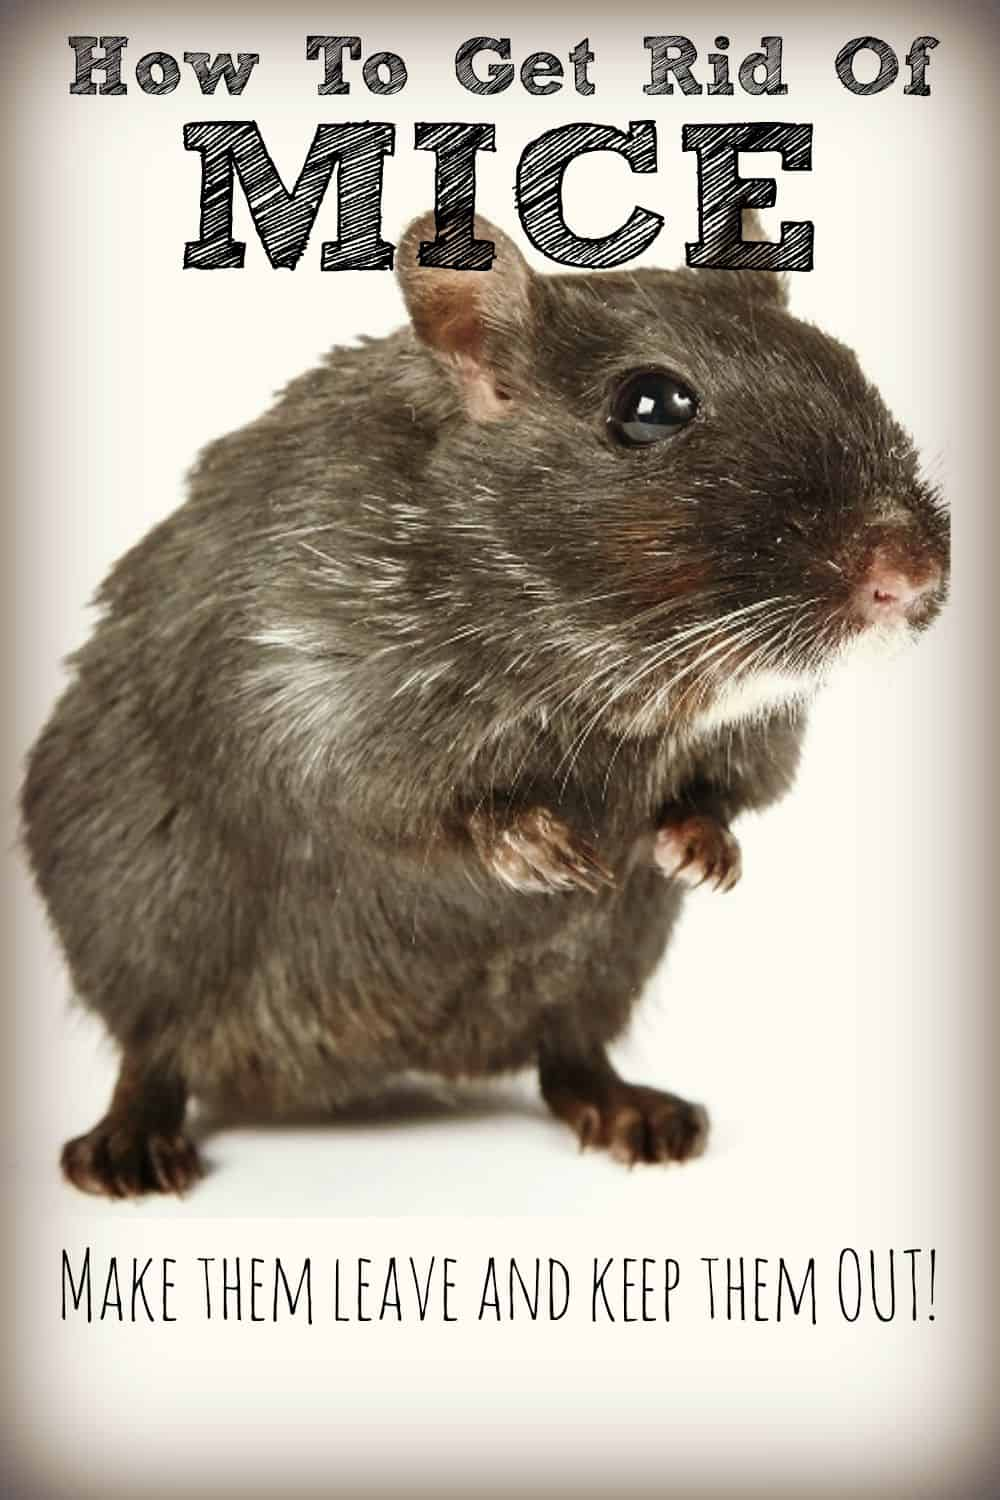 Get rid of mice naturally and keep them away mice in the home can ruin your electrical wiring damage your furnishings eat your ccuart Gallery